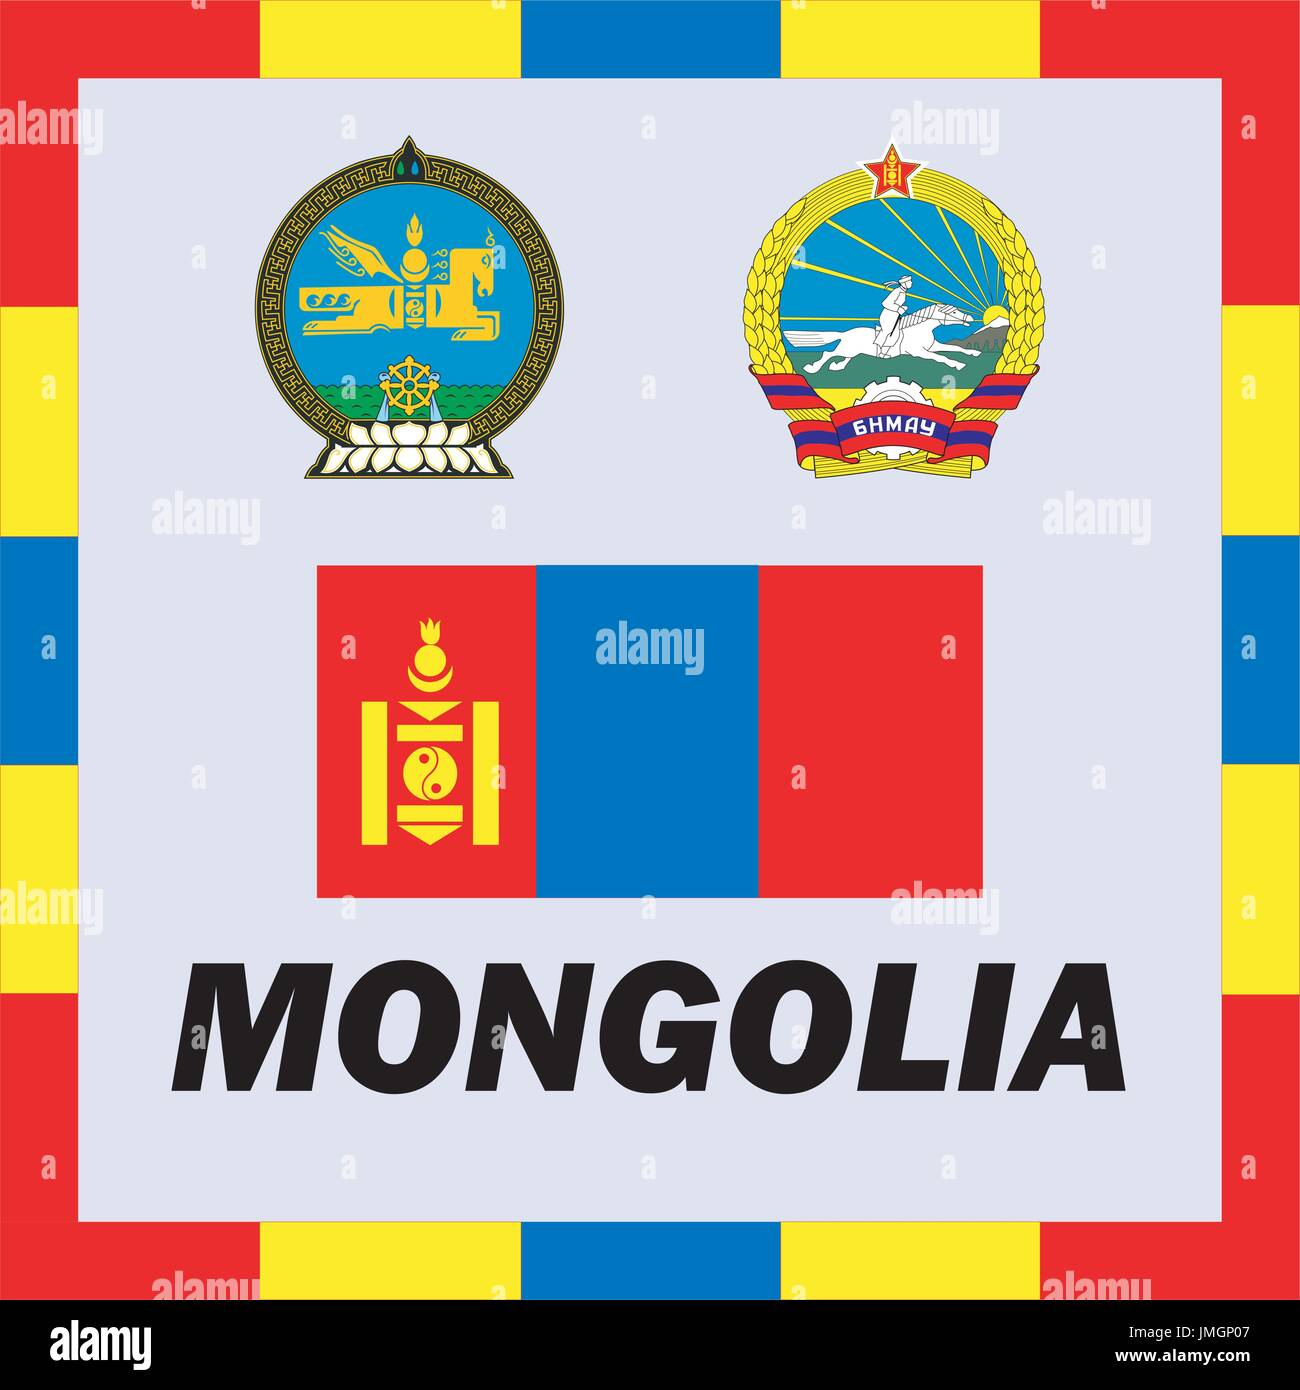 Official ensigns, flag and coat of arm of Mongolia Stock Vector